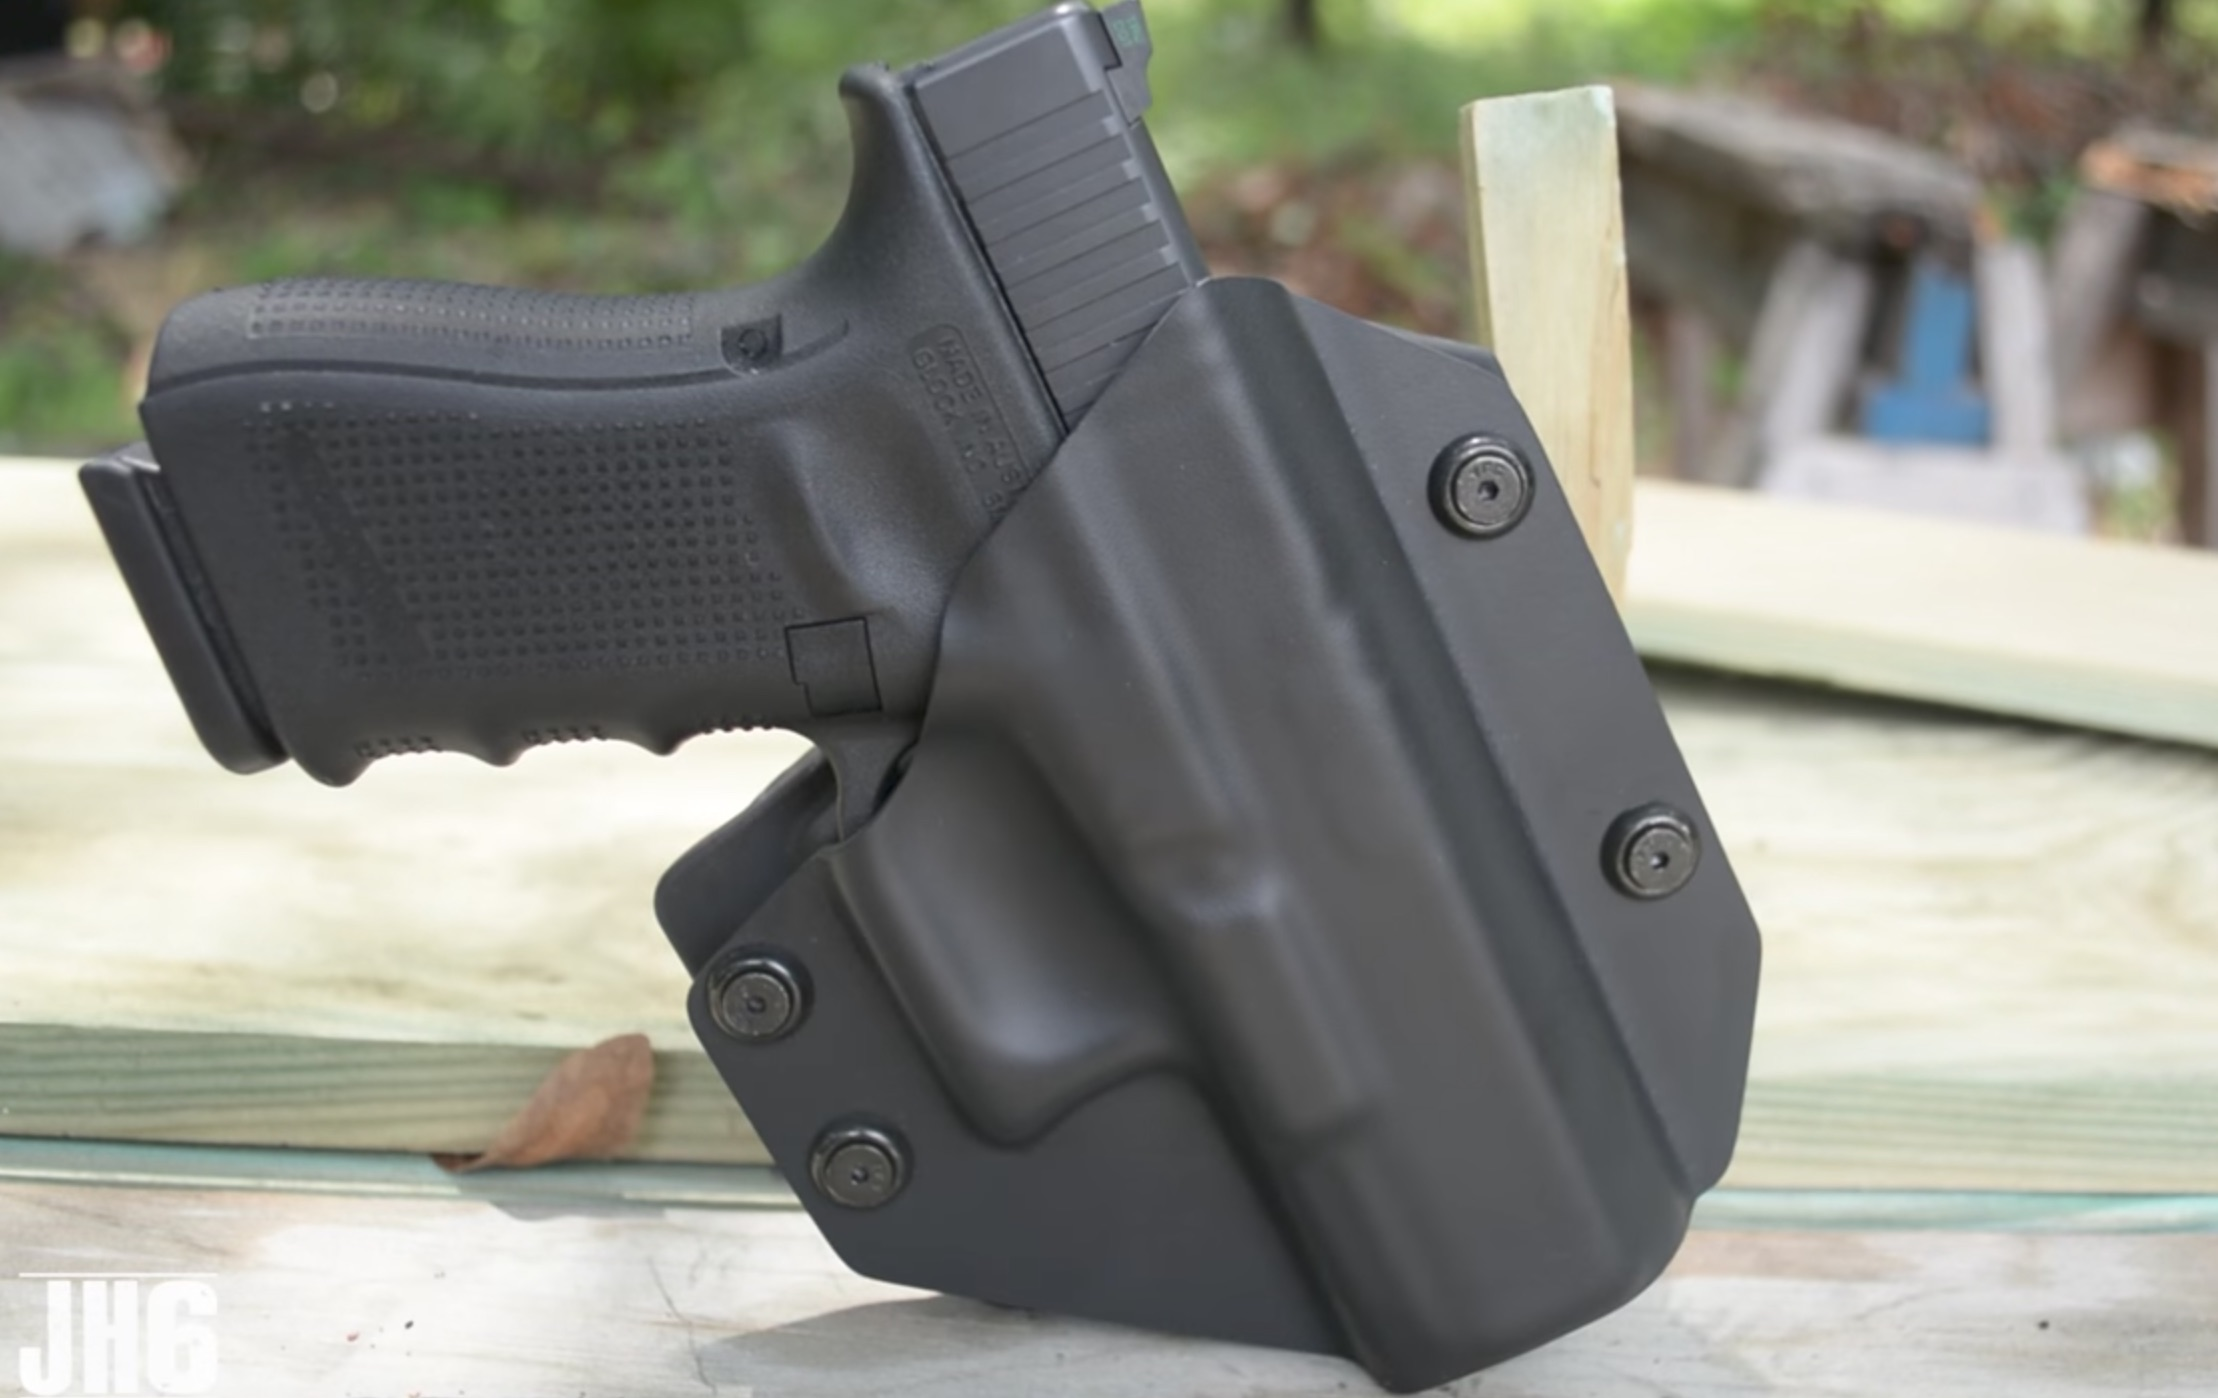 The Best OWB Holster for Glock 19 Pistols (Leather & Kydex)